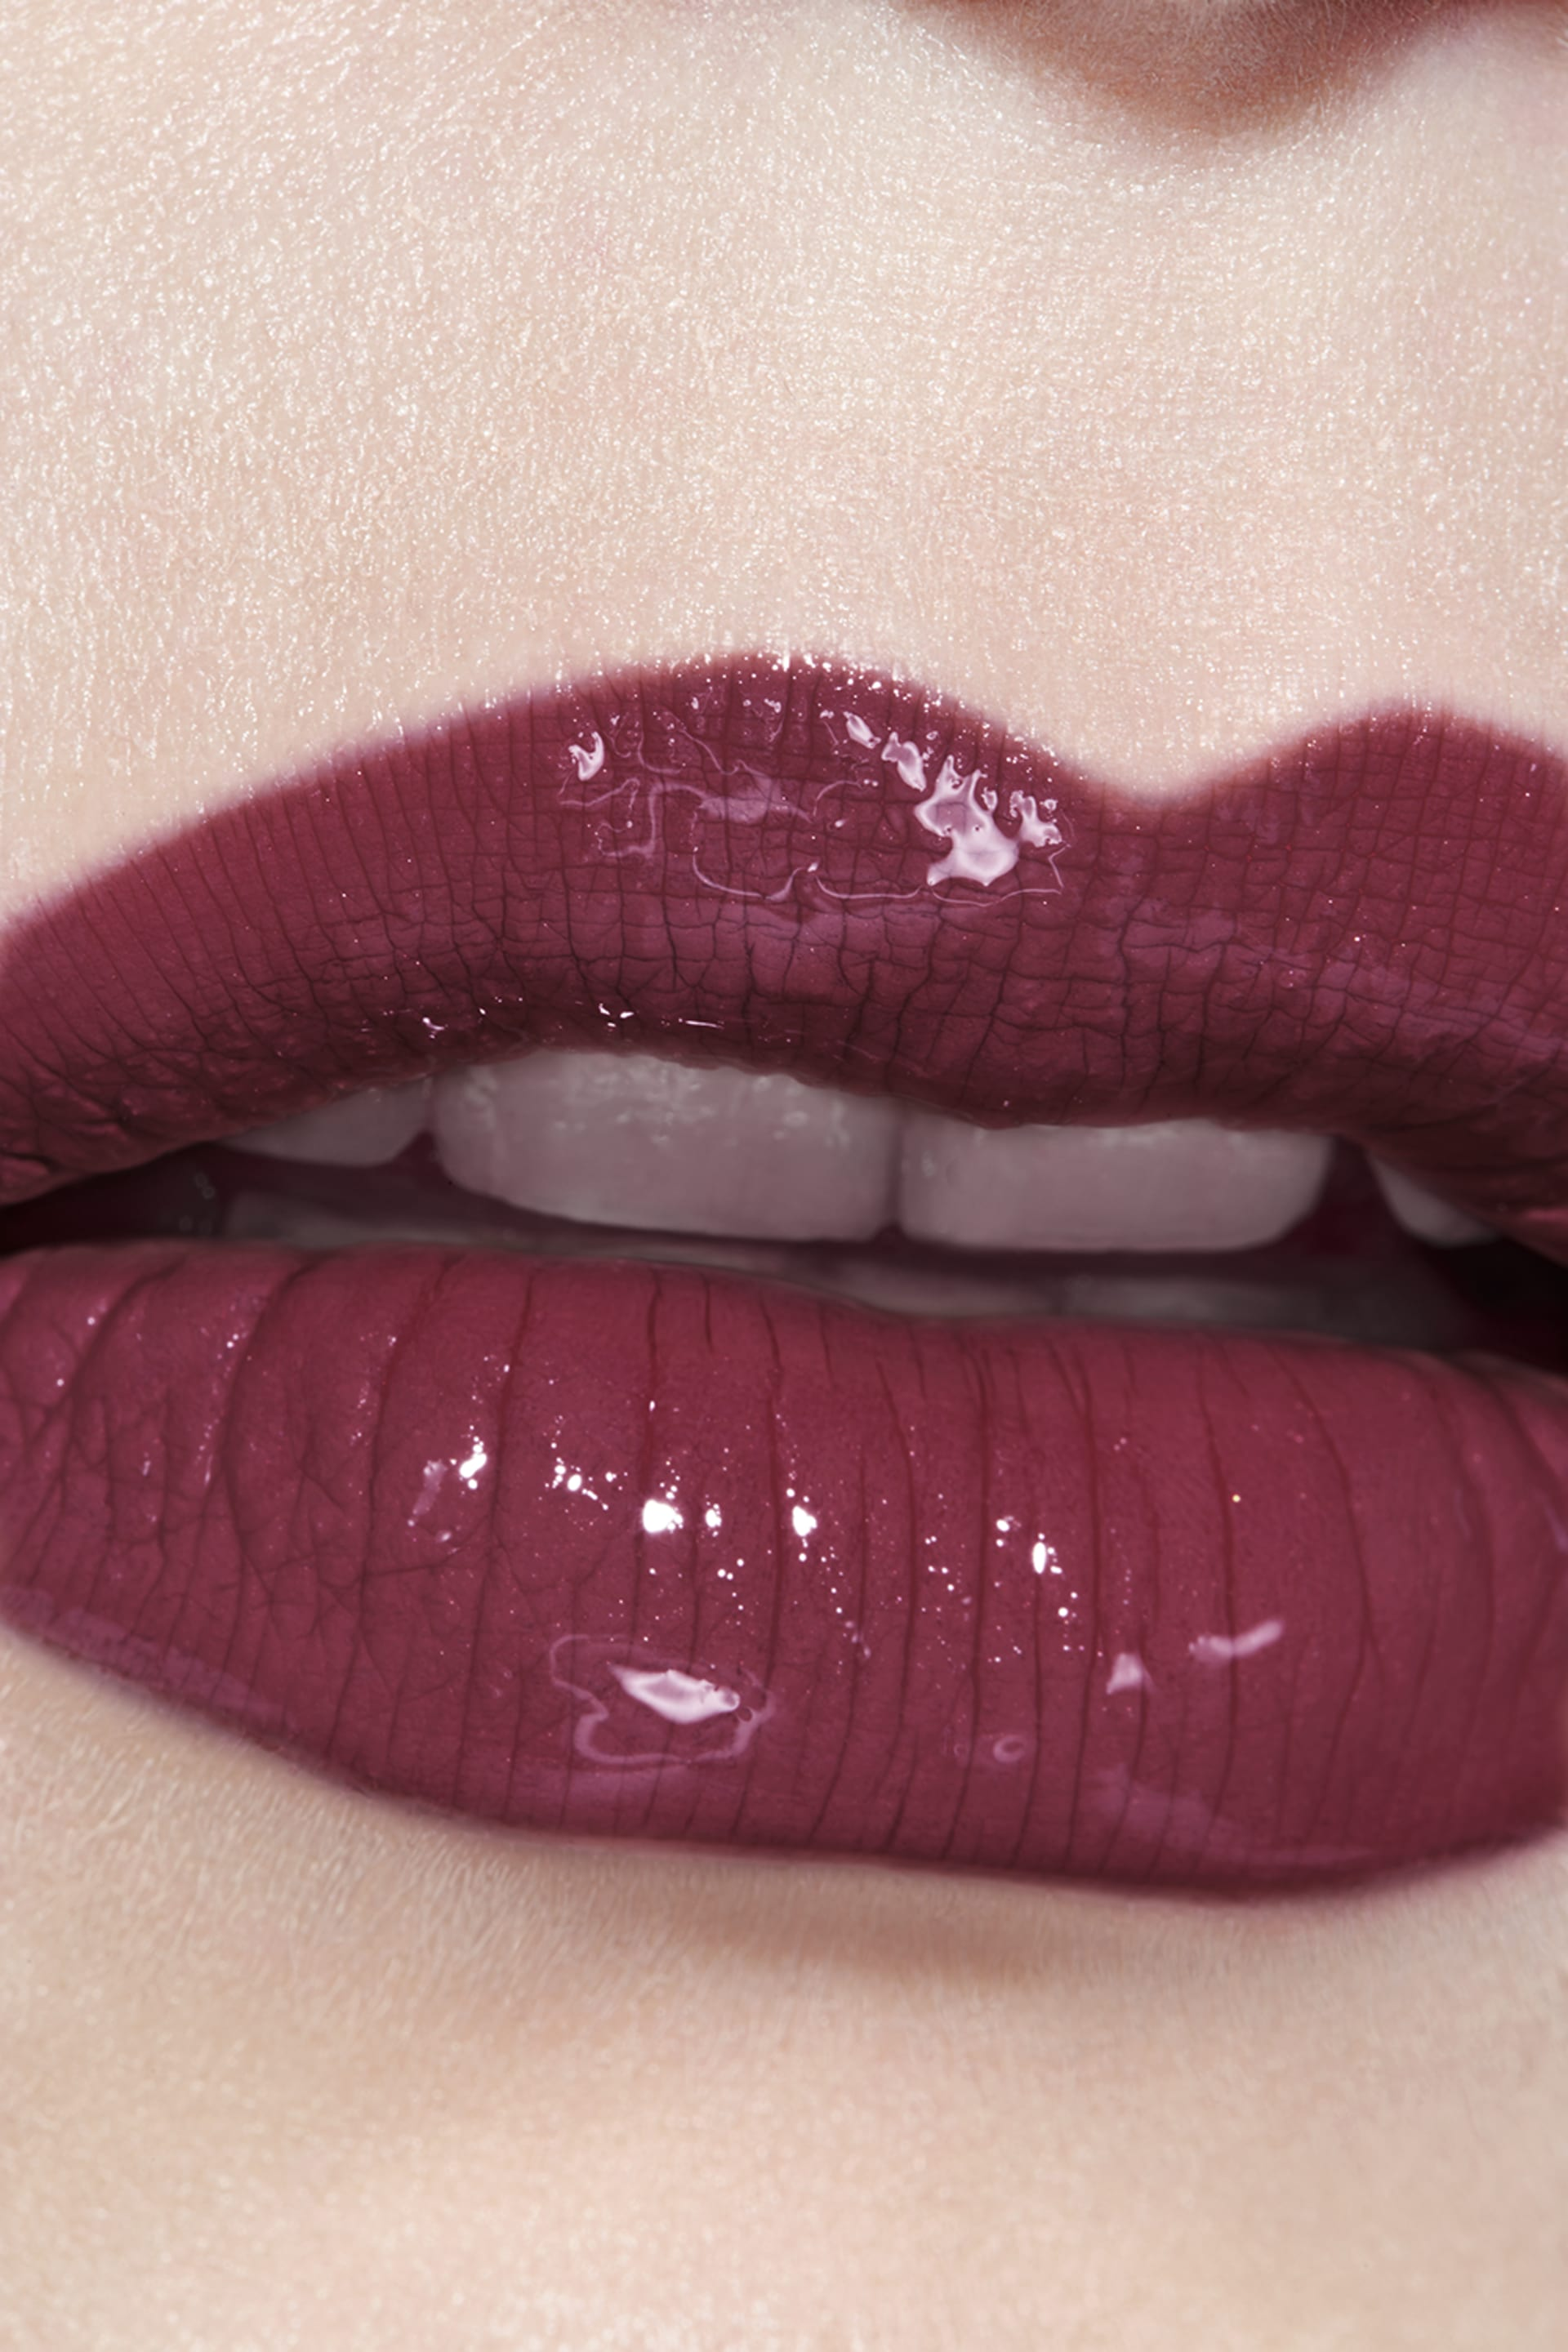 Application makeup visual 3 - LE ROUGE DUO ULTRA TENUE 142 - SWEET BERRY